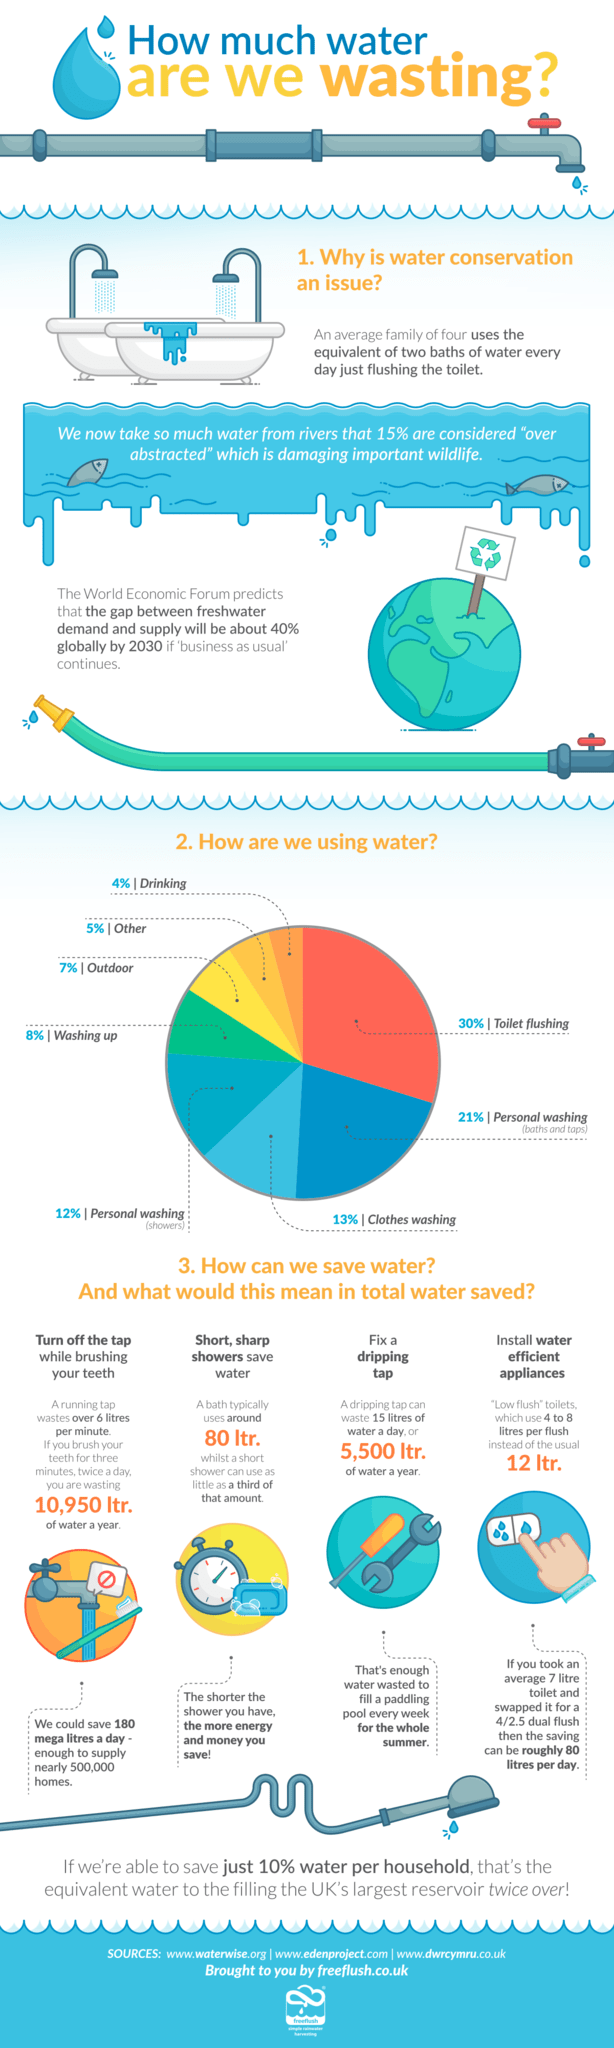 How much water are we wasting